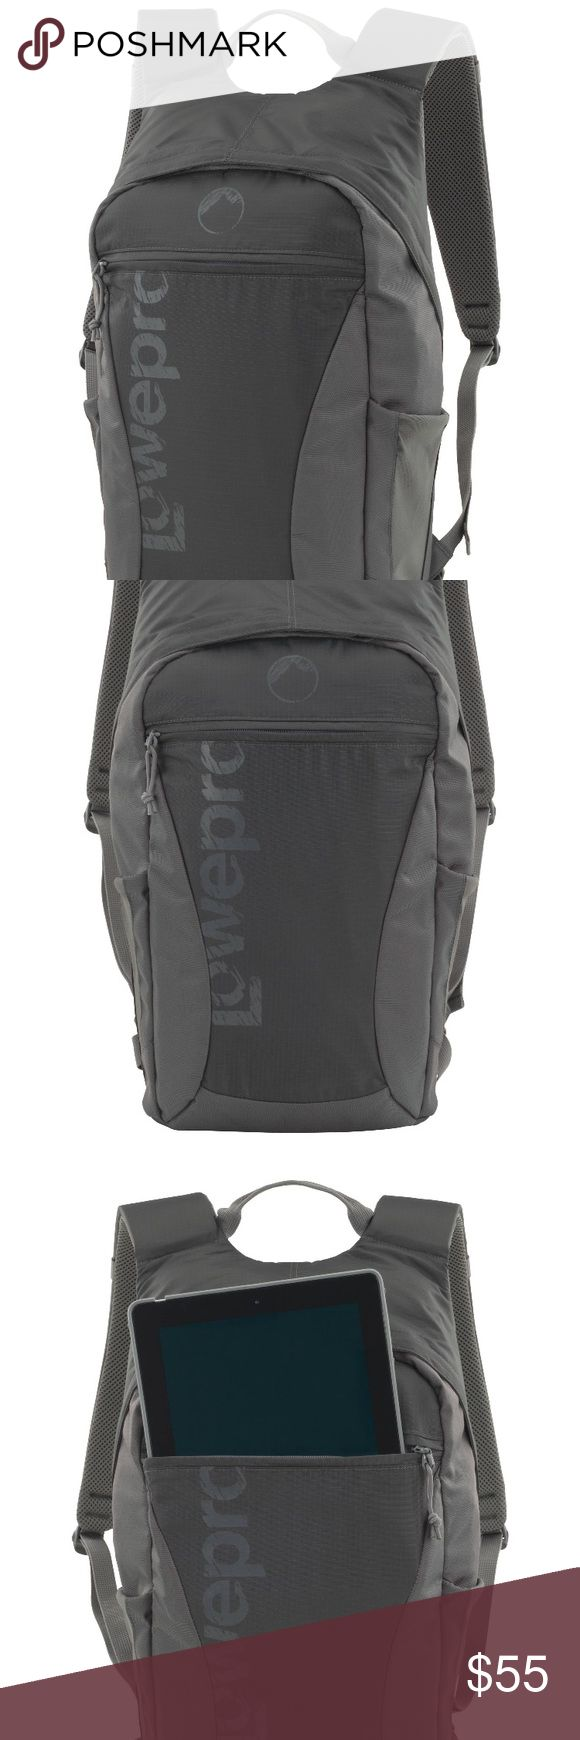 Lowepro Camera Backpack Only used for a year, great condition, very comfortable, and lots of storage! Bags Backpacks